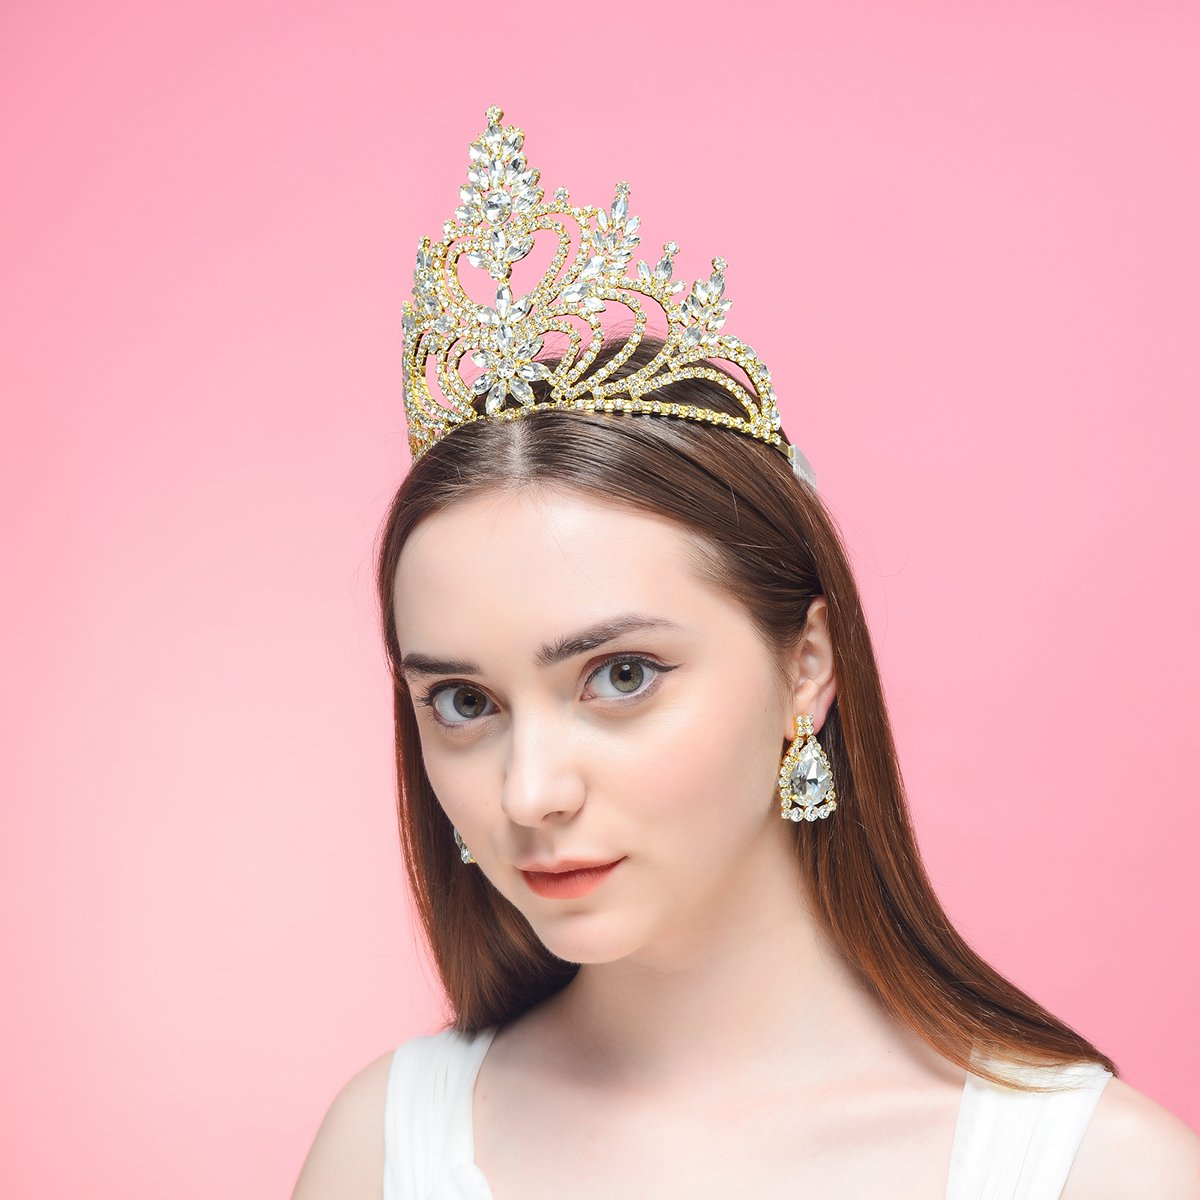 DcZeRong 5'' Tall Large Tiara Adult Women Birthday Pageant Prom Queen Gold Crystal Rhinestone Crown by DcZeRong (Image #4)